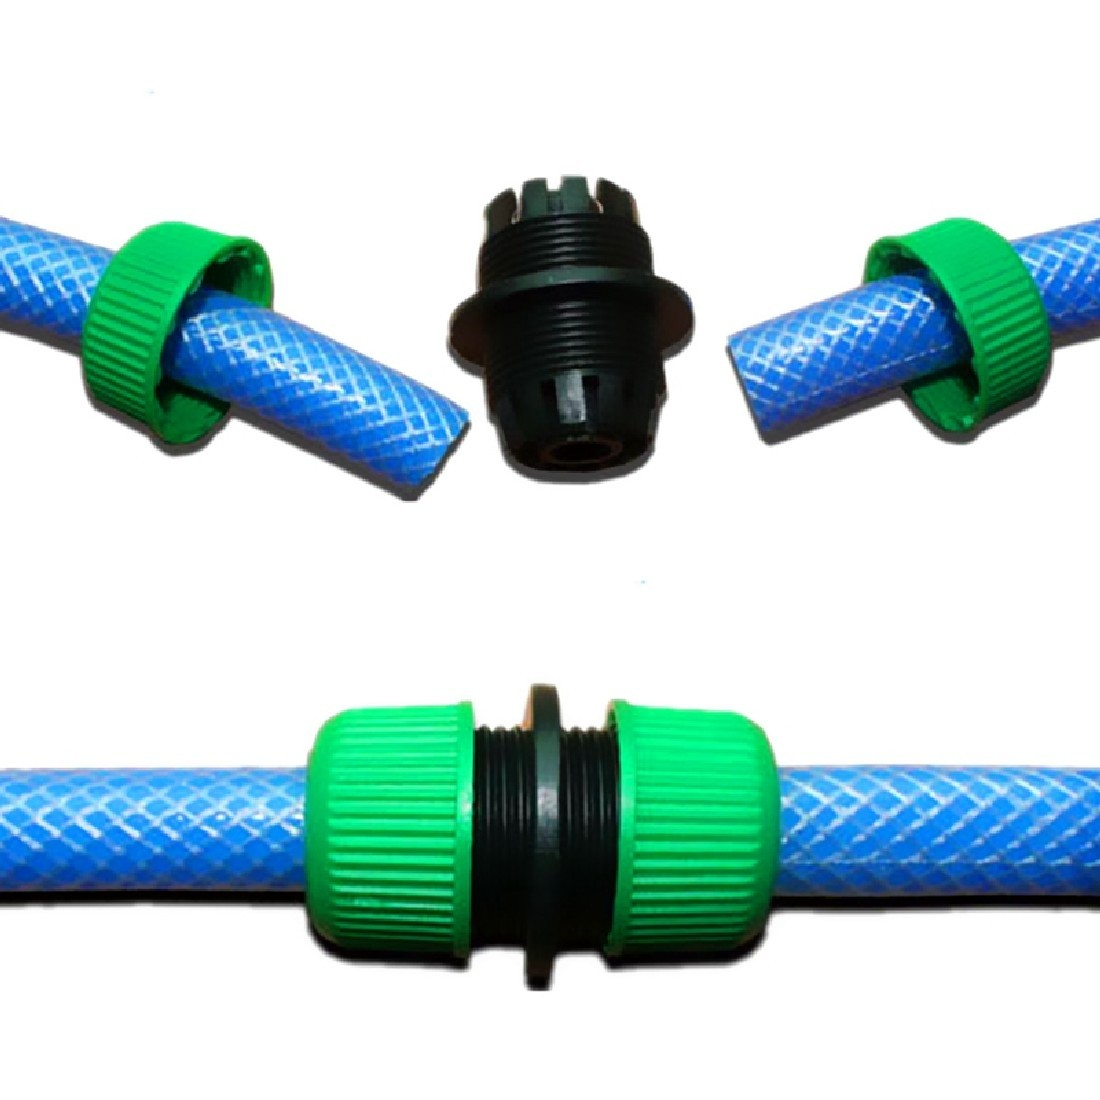 1/2'' Garden Water Hose Connector Pipe Quick Connectors Joining Mender Repair Leaking Joiner Connector Adapter